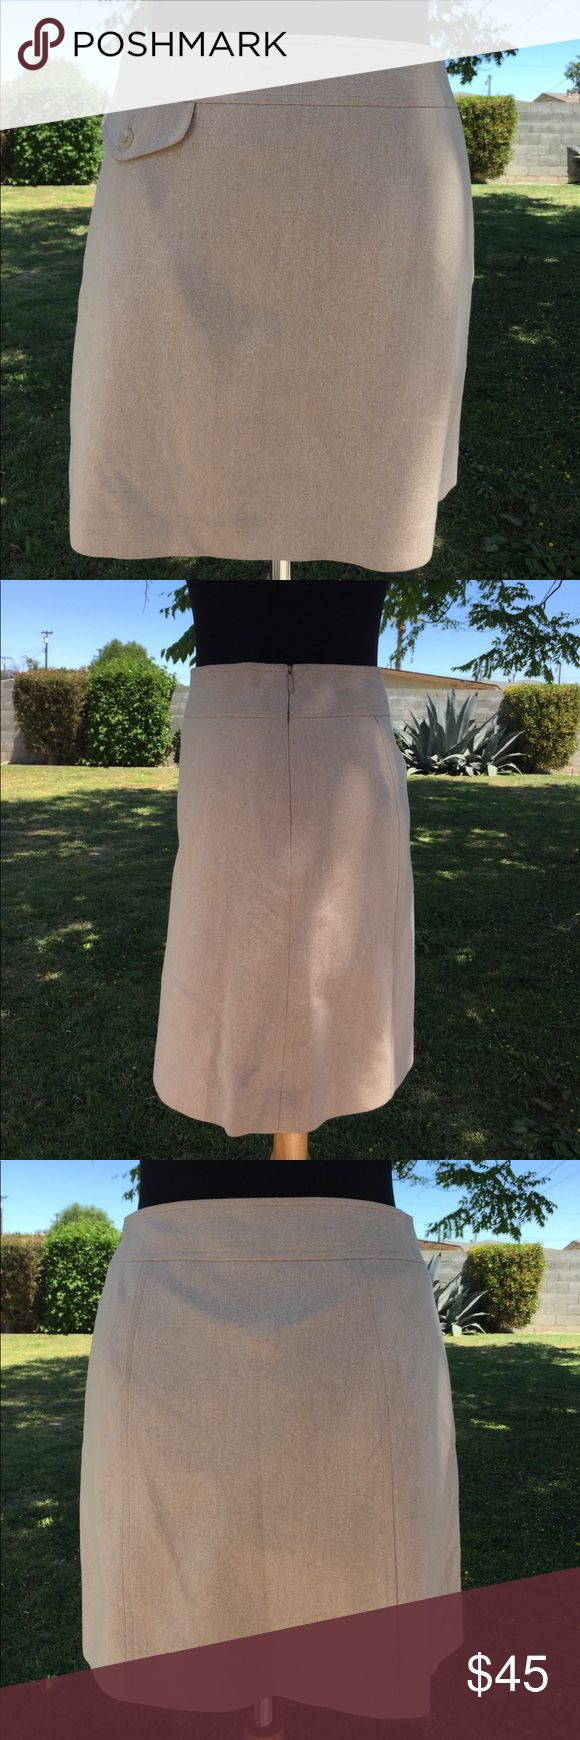 "Banana Republic Wool Cashmere Lt Camel Skirt - 2 Banana Republic Wool Cashmere Lt Camel Skirt Size 2 (gently used, looks new)  Measurements measured flat: Waist: 14"" Length: just under 17"" Banana Republic Skirts Midi"